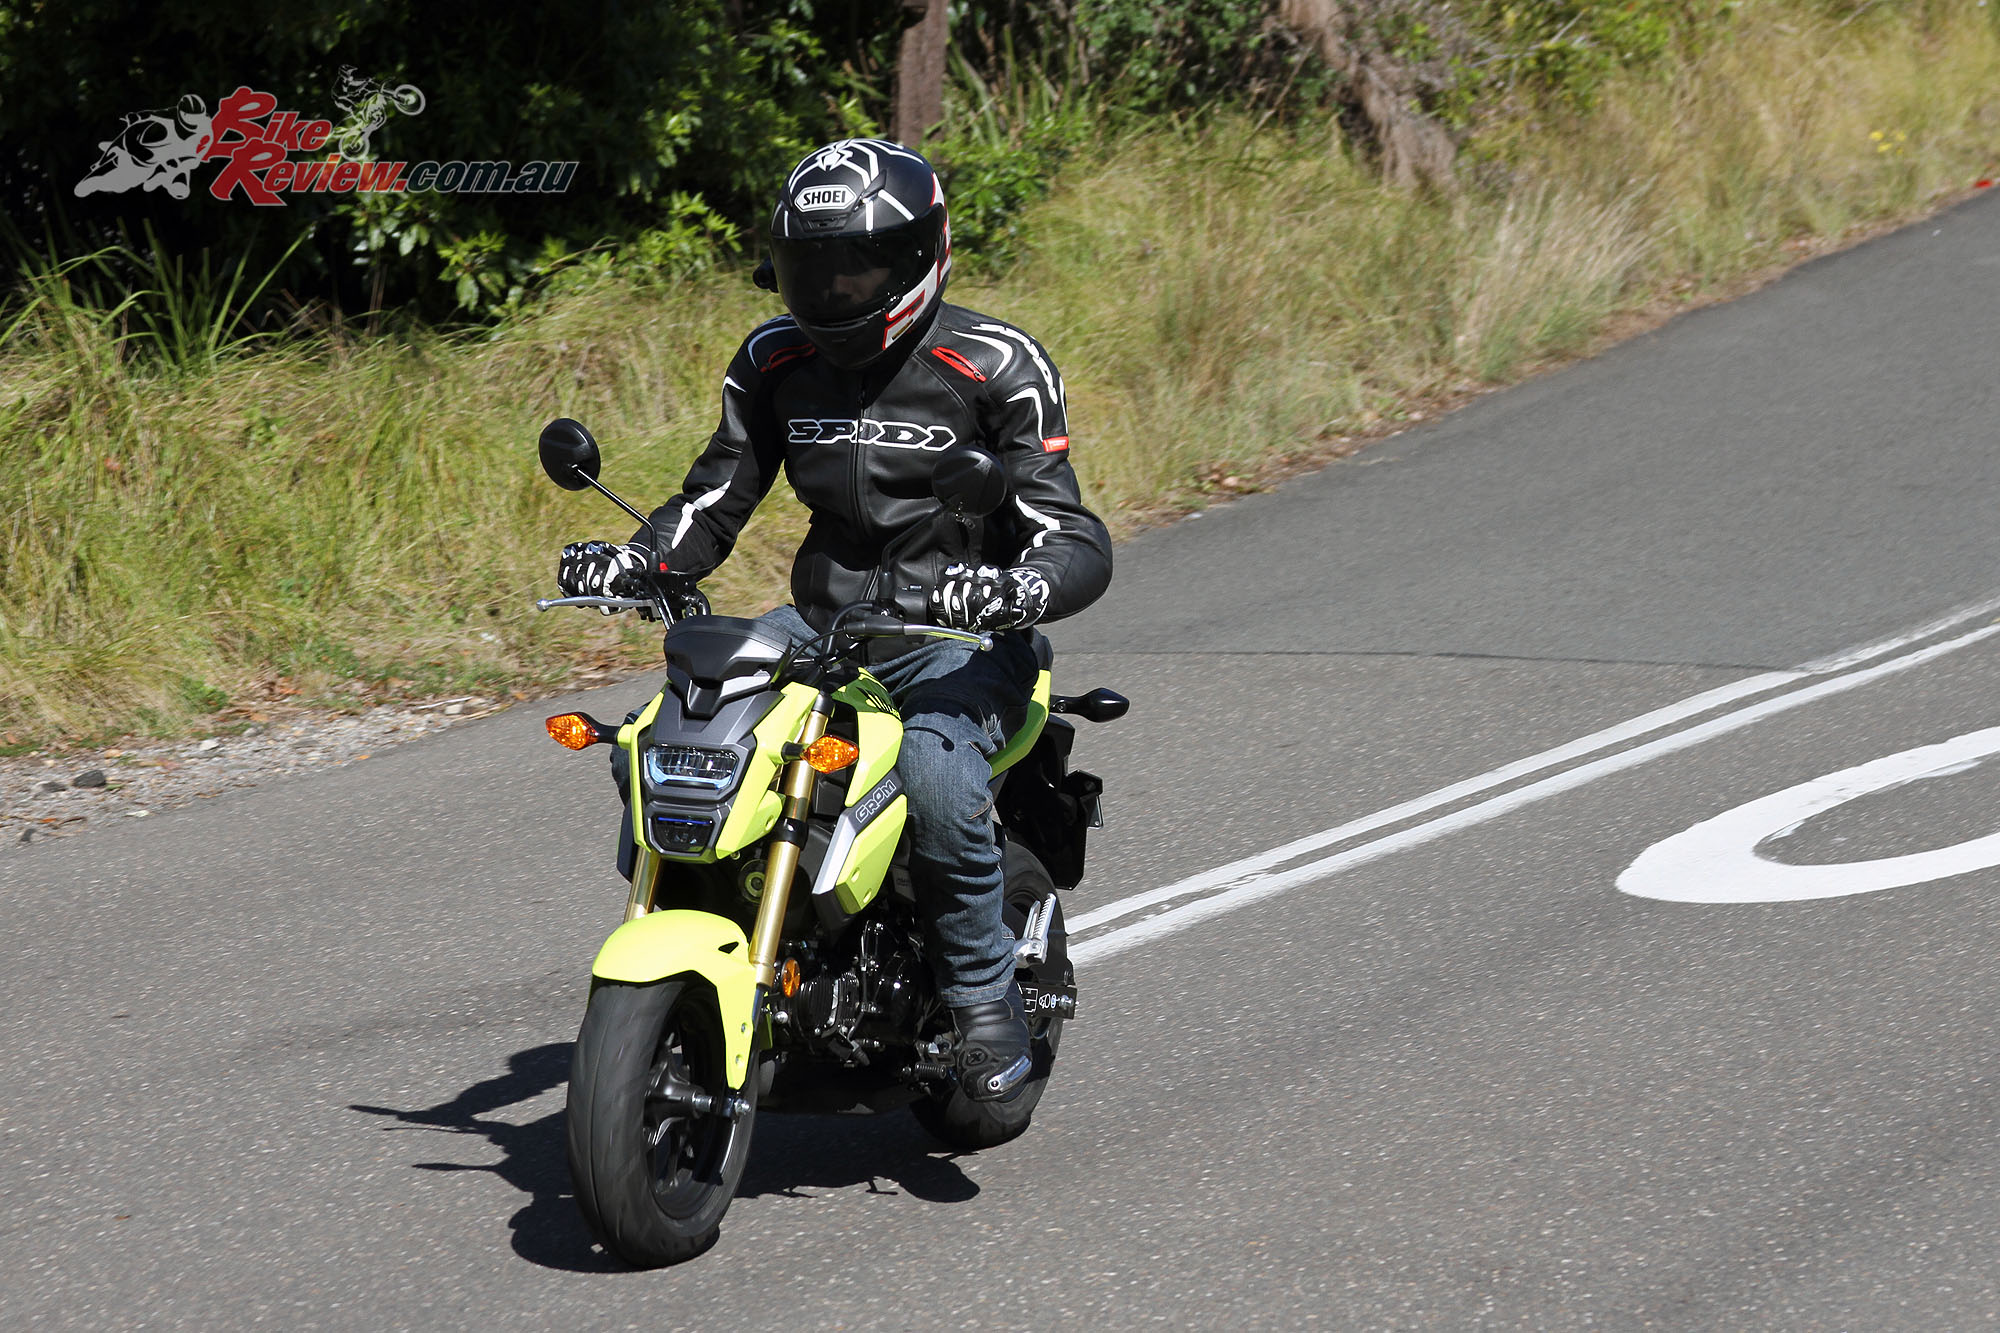 Harley Street 500 >> Review: 2016 Honda Grom - Bike Review